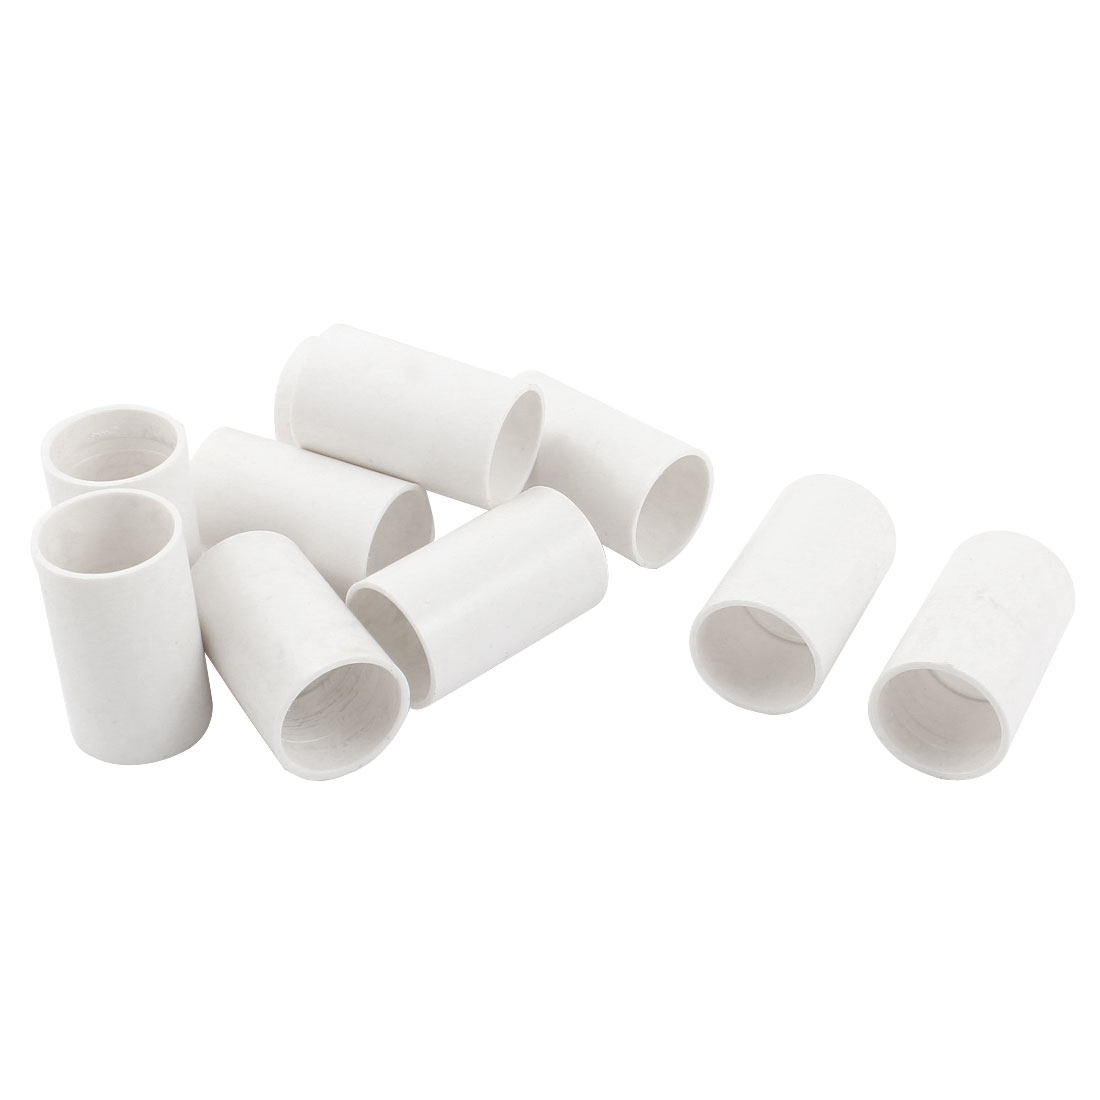 10 Pcs 25mm Inner Diameter Straight PVC Pipe Connectors Fittings White